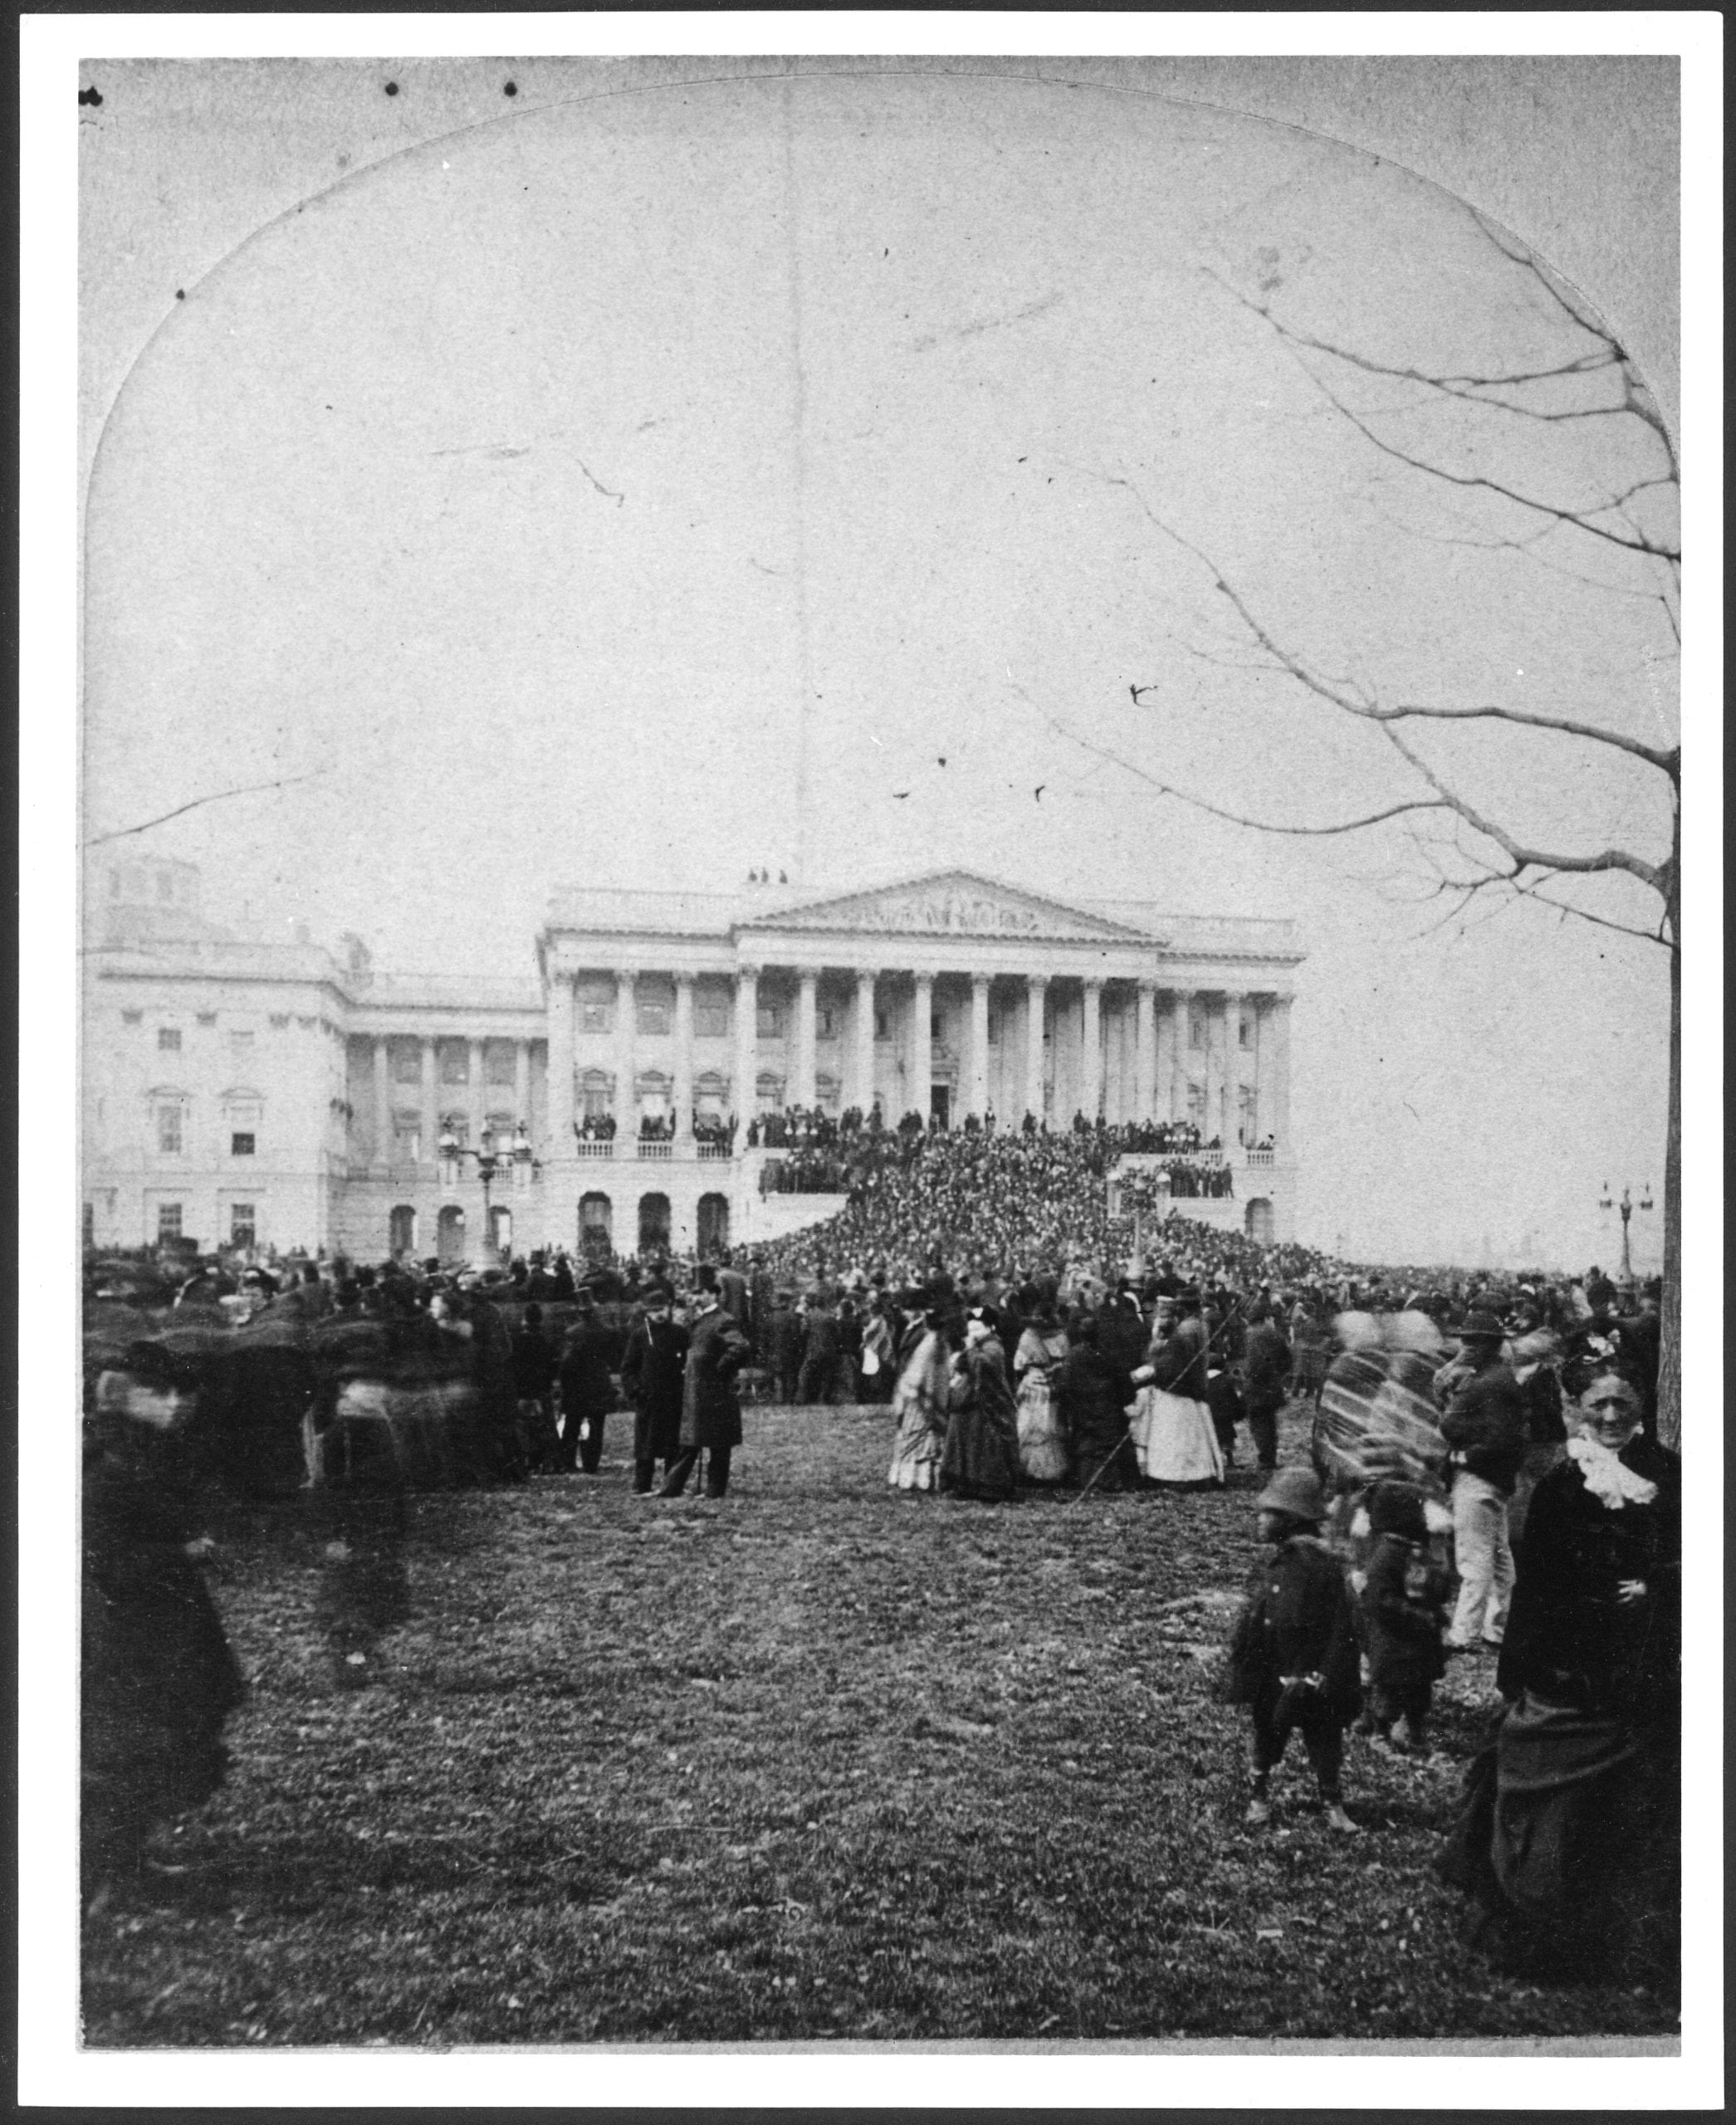 Inauguration of President Hayes, showing the Senate wing of the U.S. Capitol and the crowd on the lawn before it, March 5, 1877]. Architect of the Capitol. Reproduction number: LC-USA7-29858 (b&w film copy neg.).